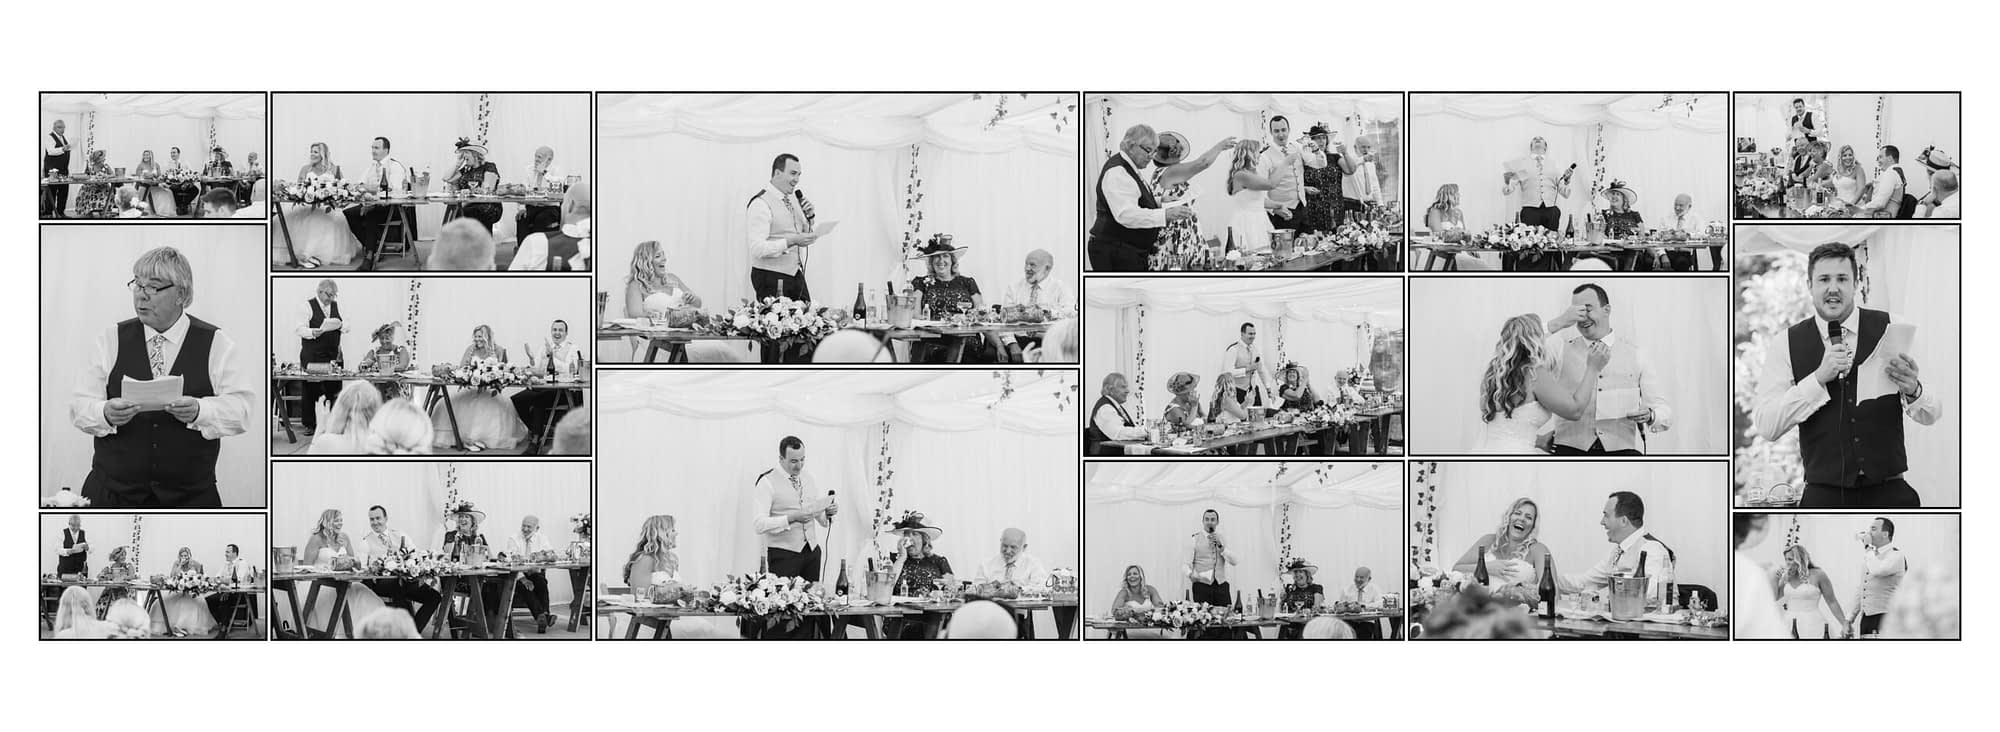 collection of photographs showing people sitting down in a marquee